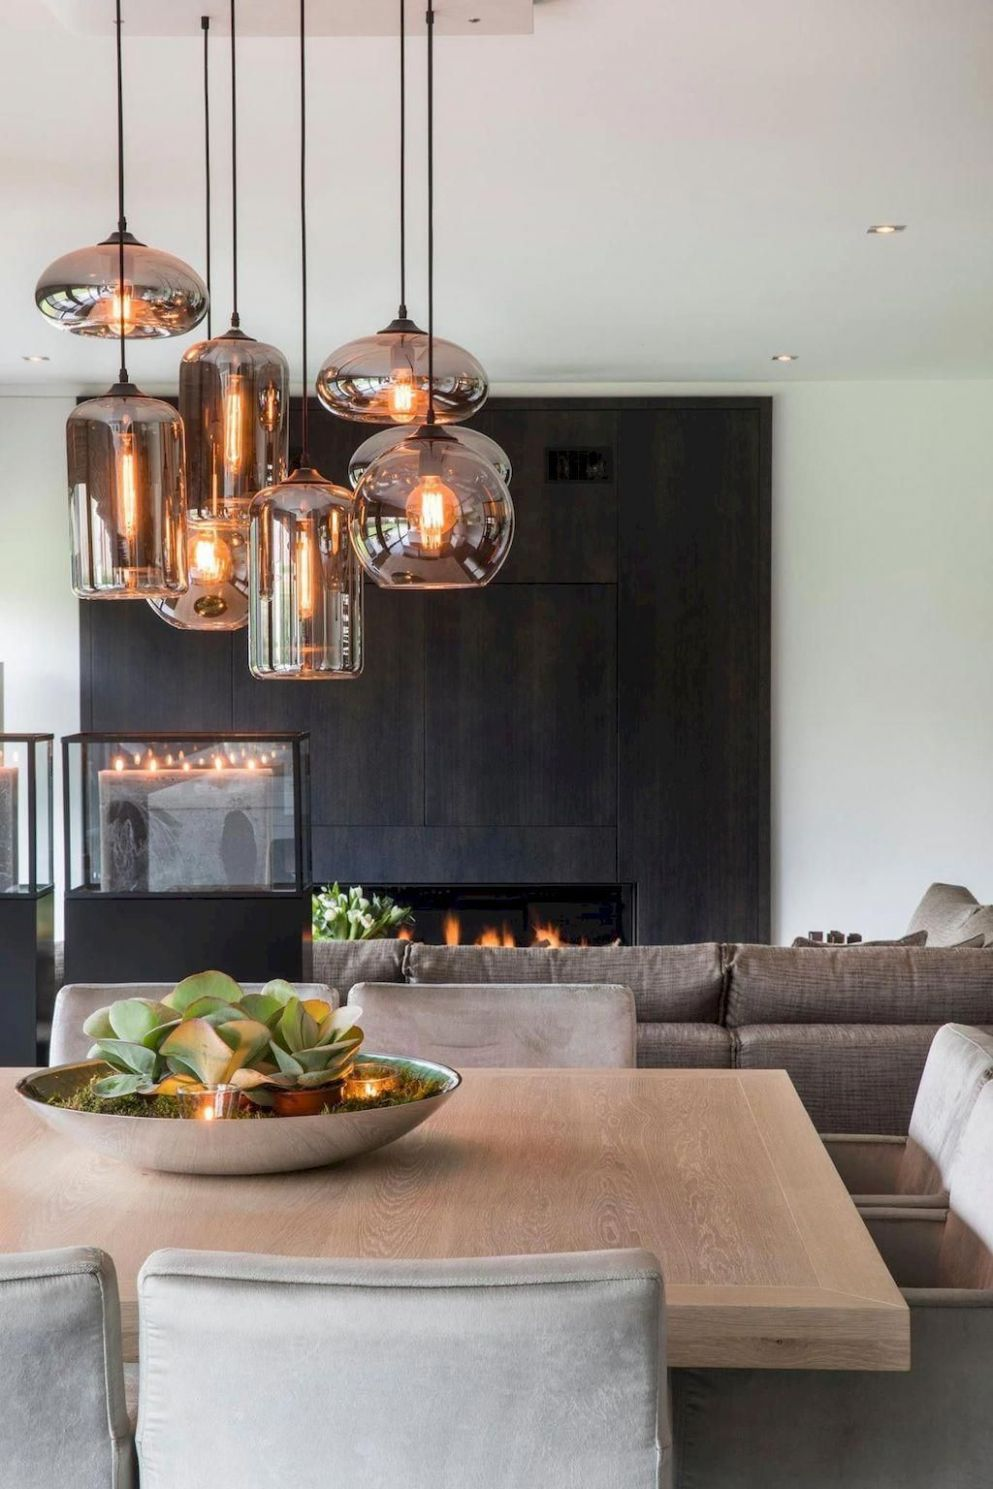 9+ Kitchen Lighting Ideas for Any Styles, Newest !! | Dining room ..